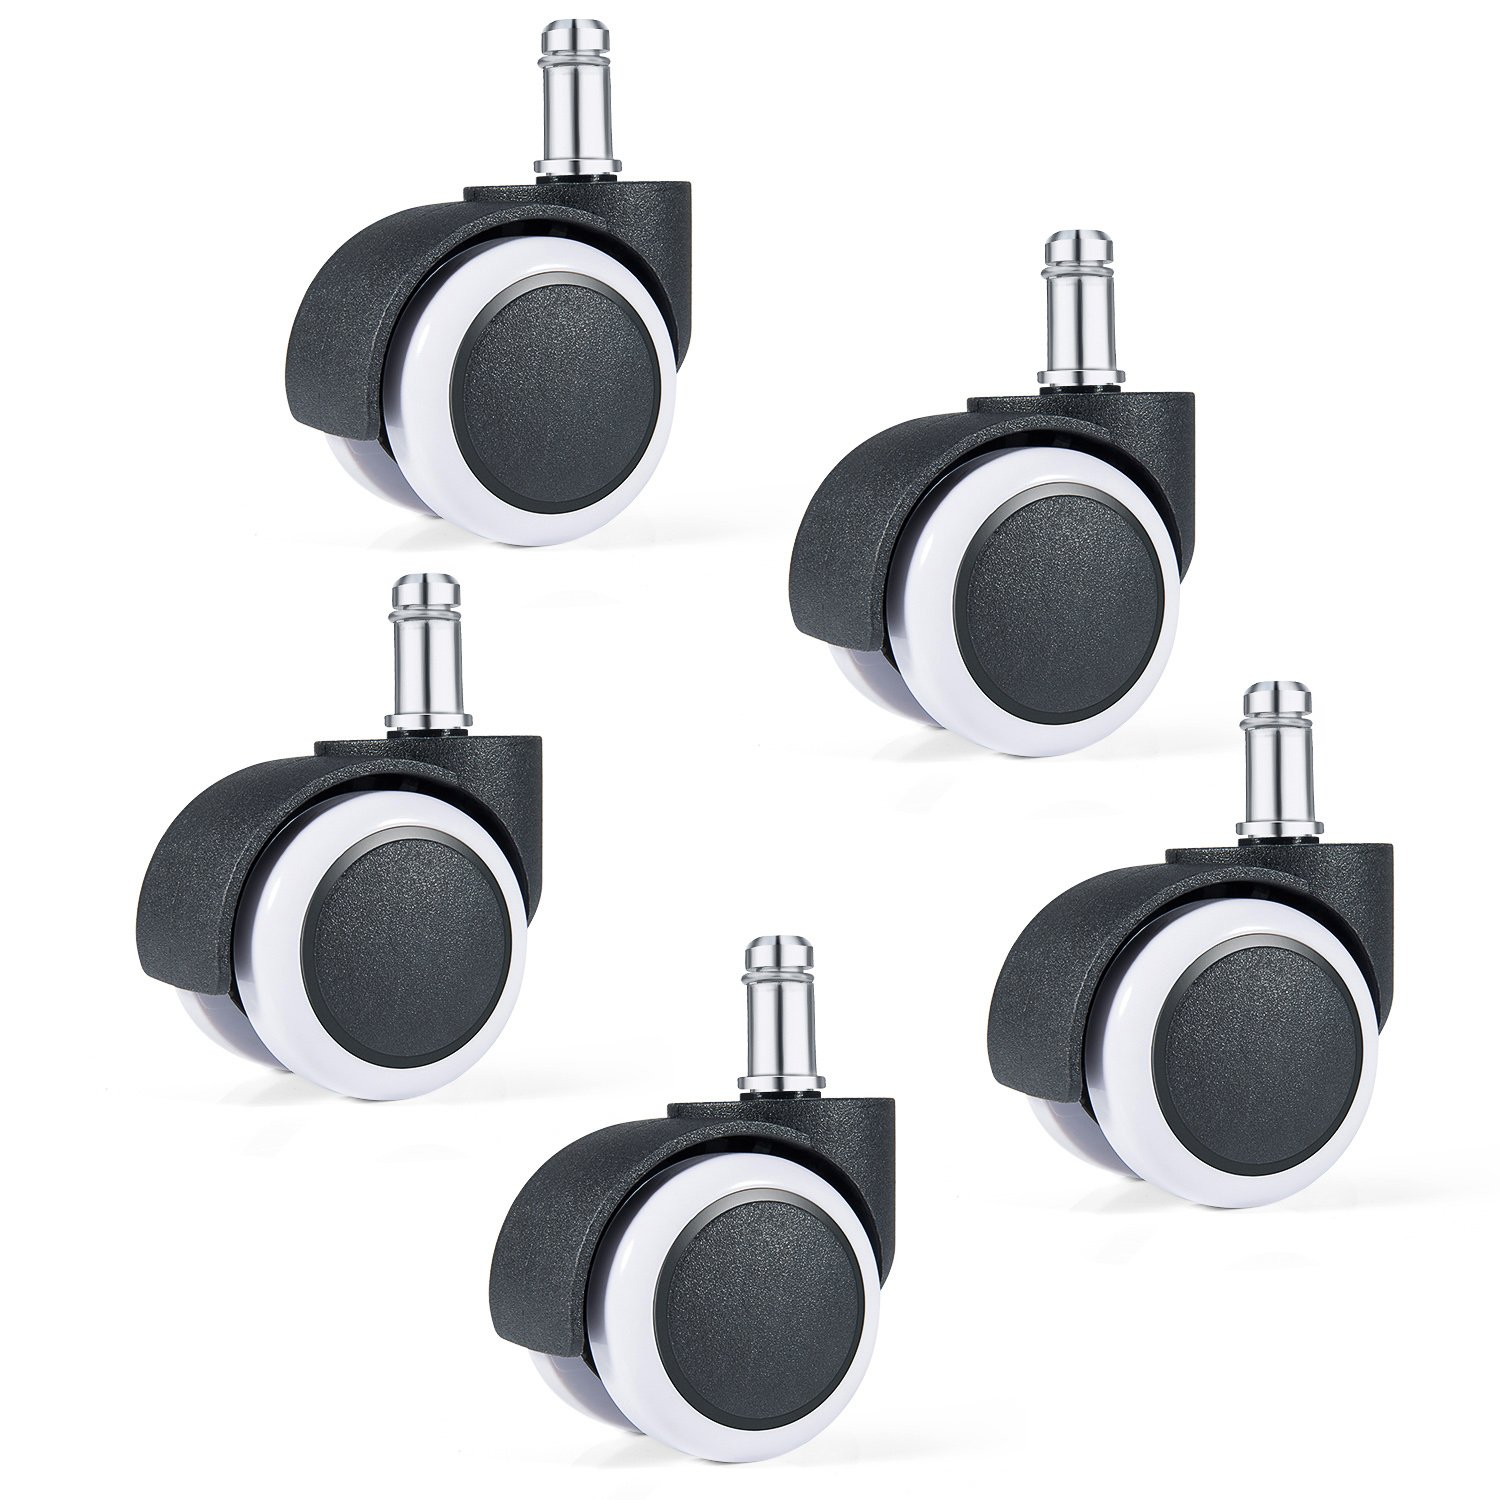 Diealles Caster Wheel Replacement, 11mm / 50mm Office Chair Castors Replacement Office Chair Wheels Office Chair - 5PCS